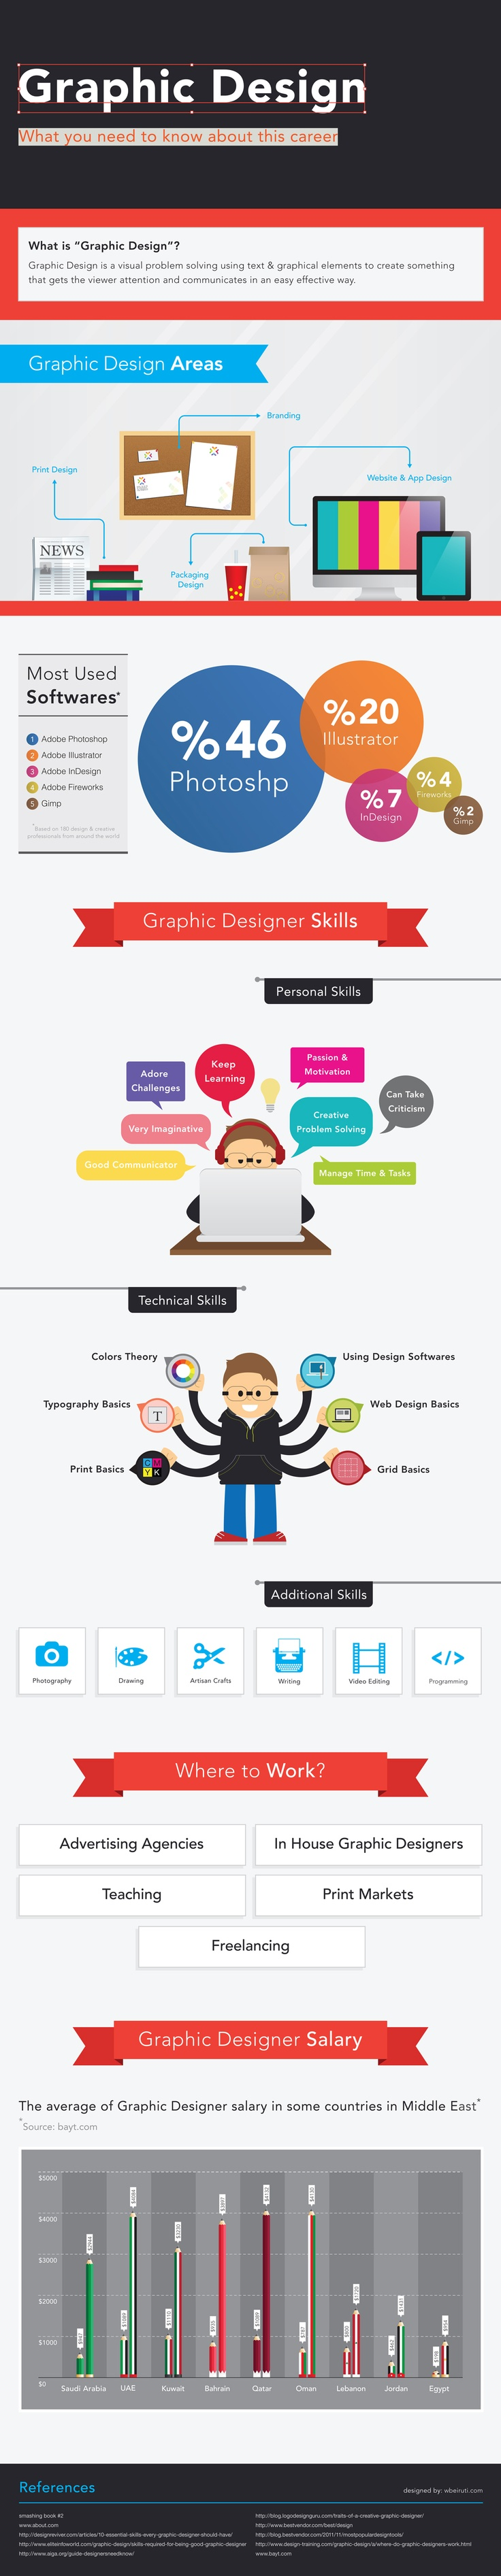 Graphic design: What you need to know about this career